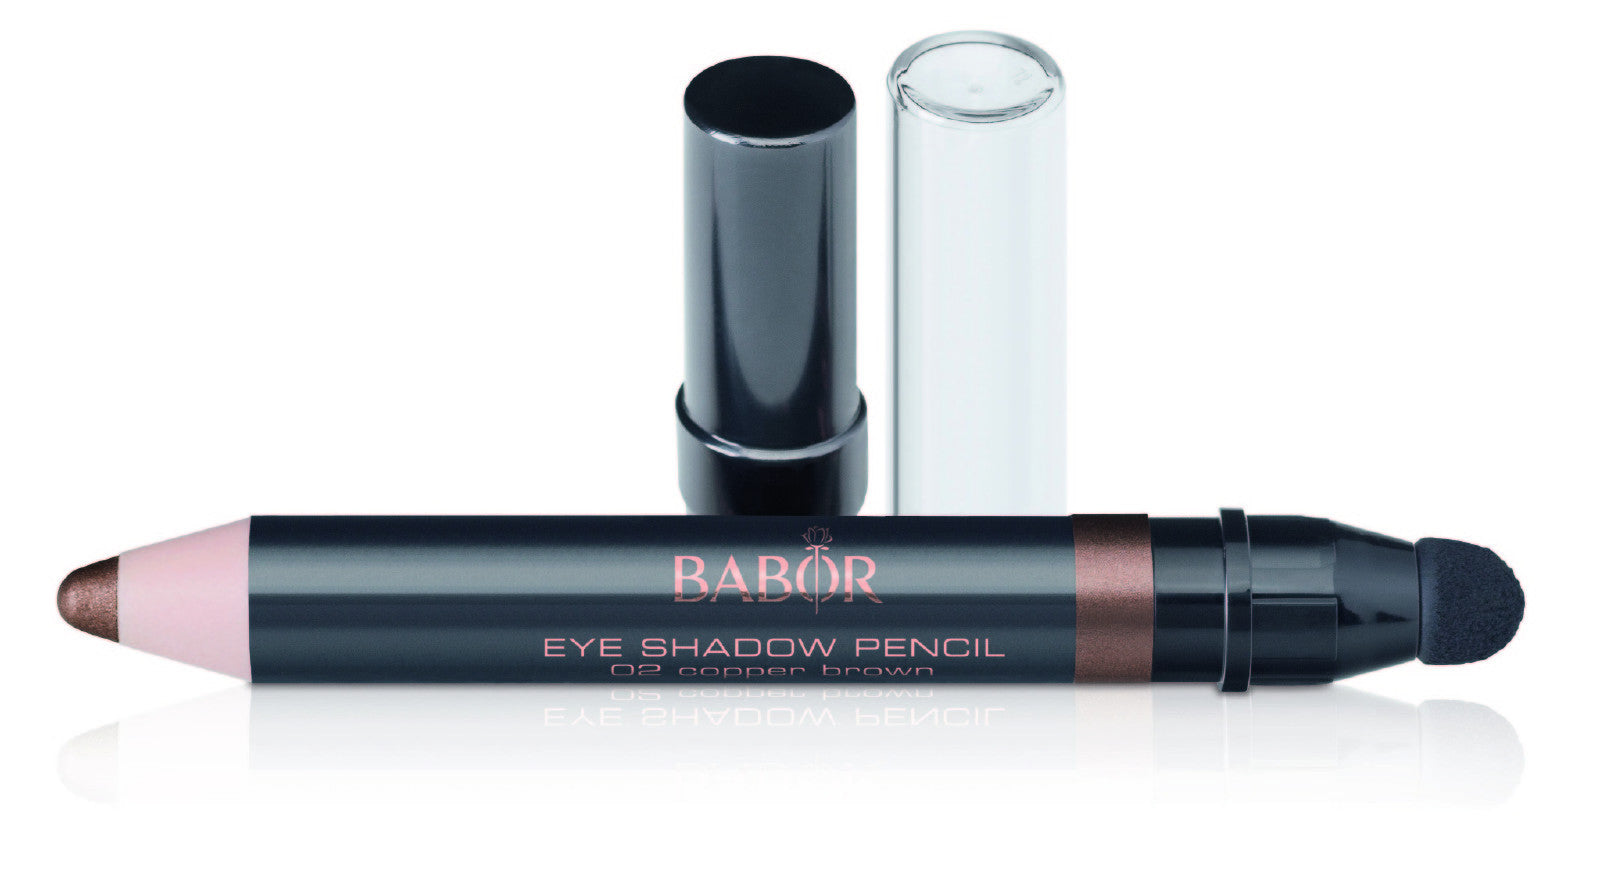 BABOR Eye Make up Eye Shadow Pencil 02 Copper Brown